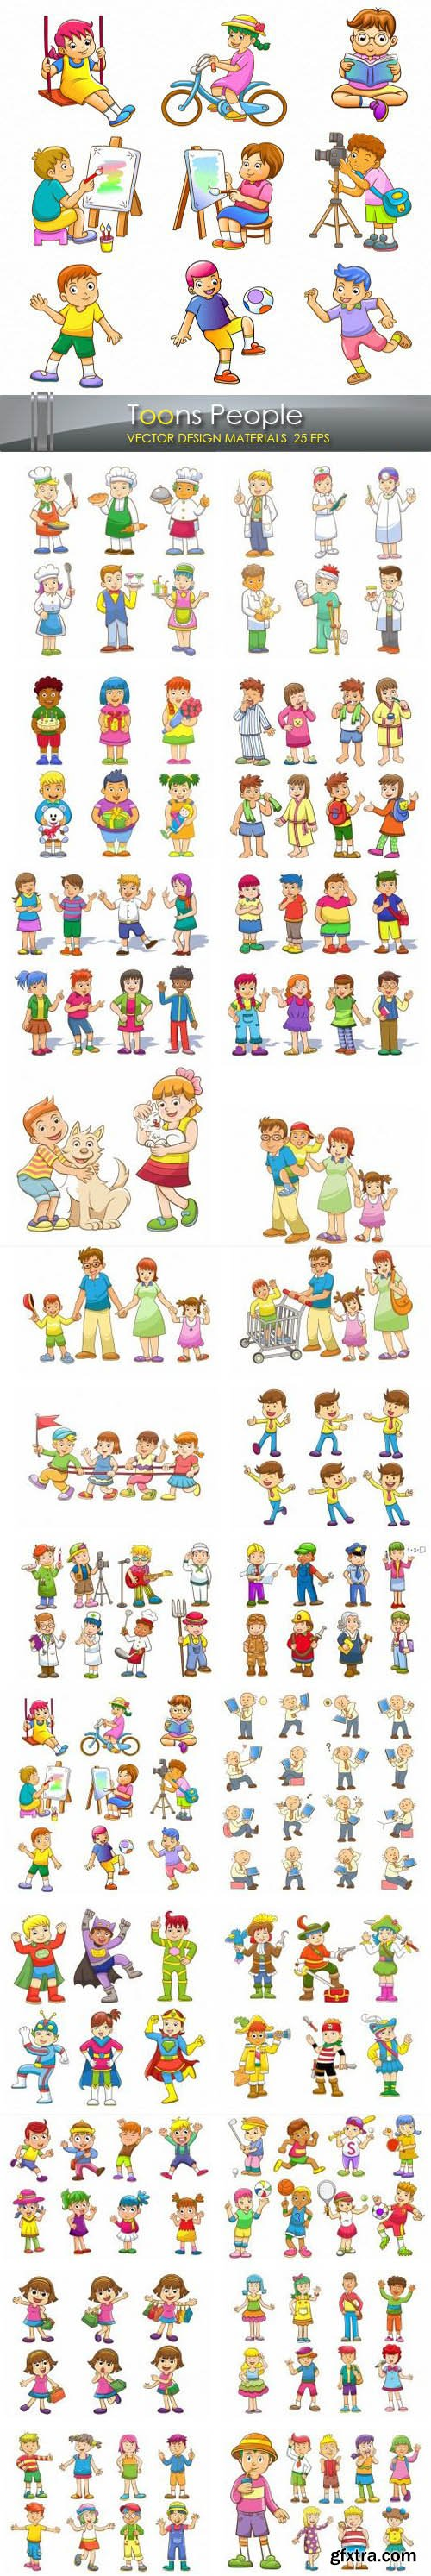 Playing Children - Toons People - Children's Clipart